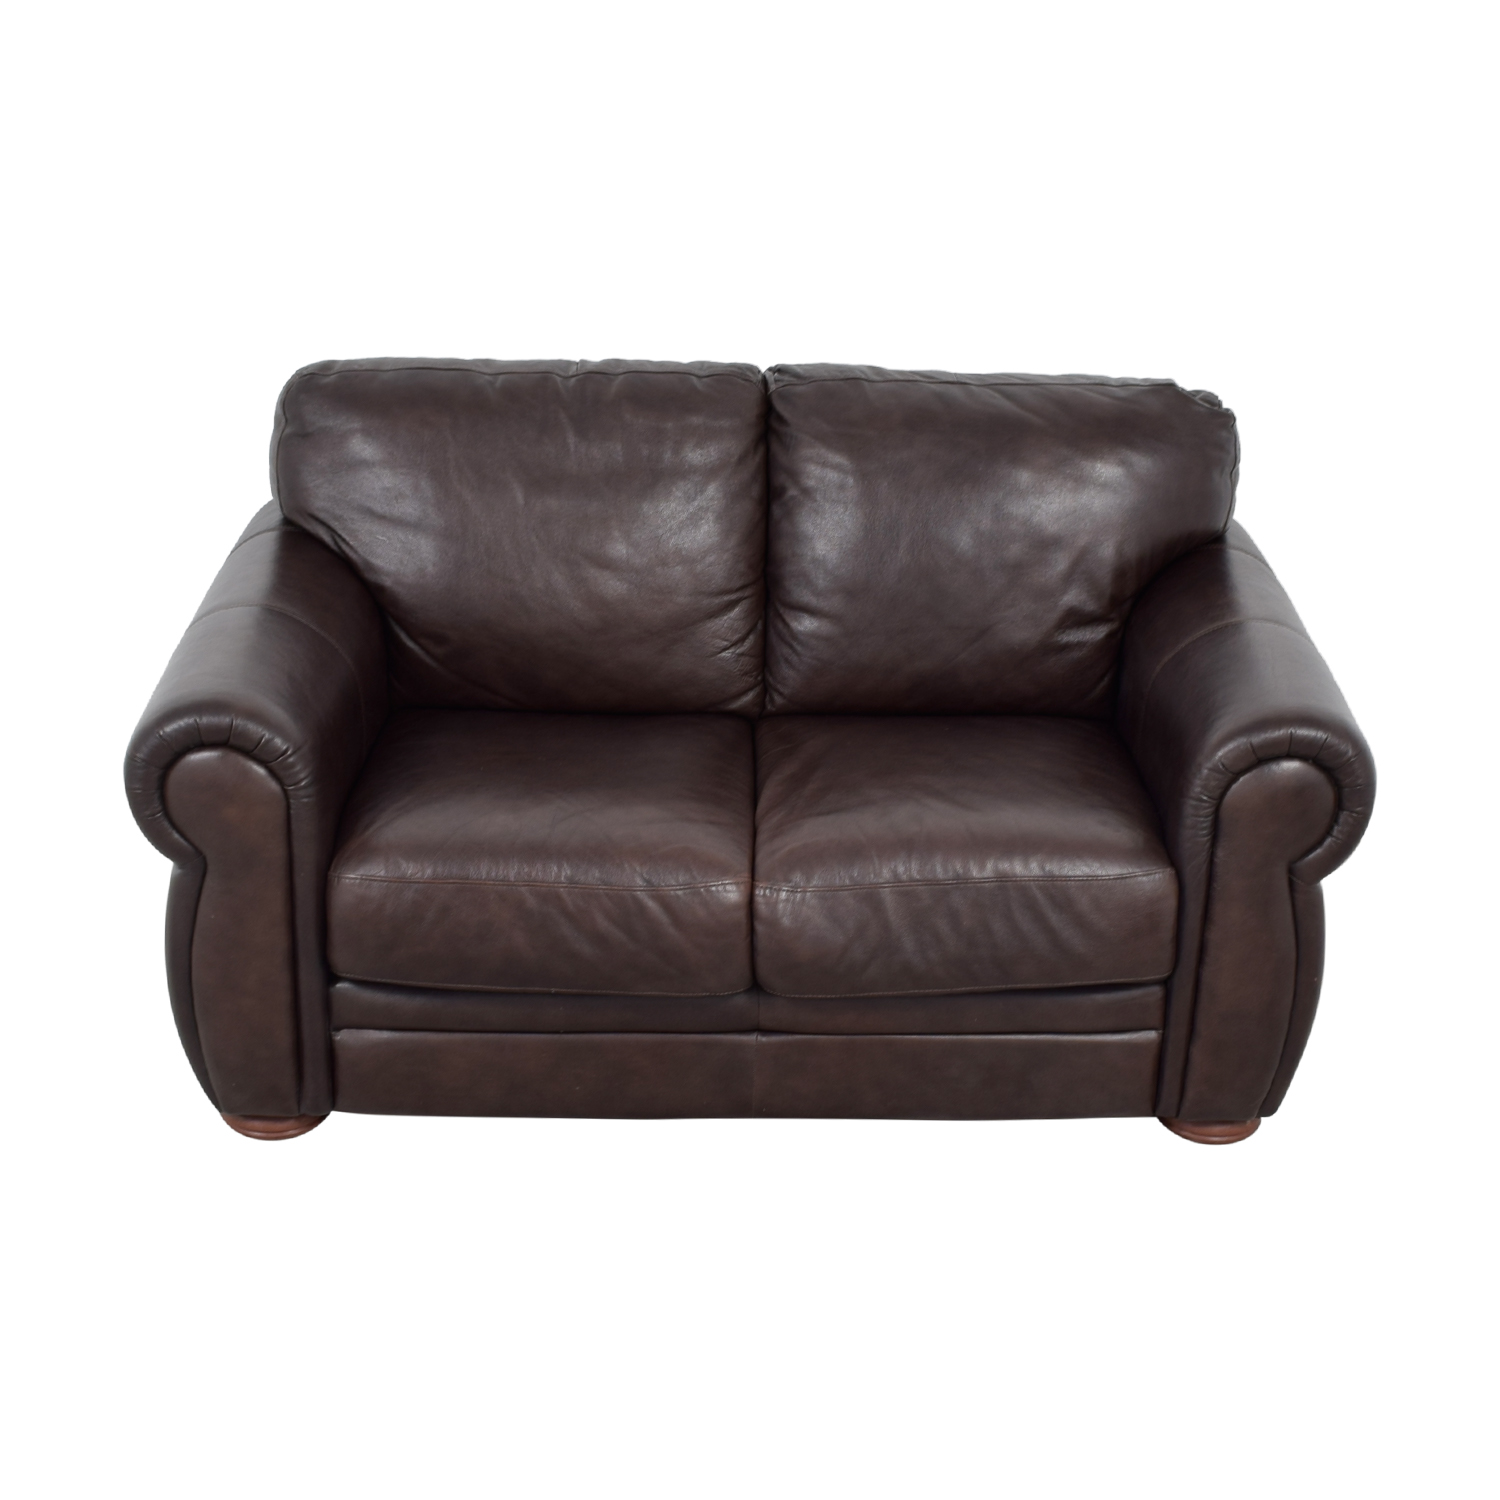 Raymour & Flanigan Brown Leather Two-Cushion Sofa / Sofas